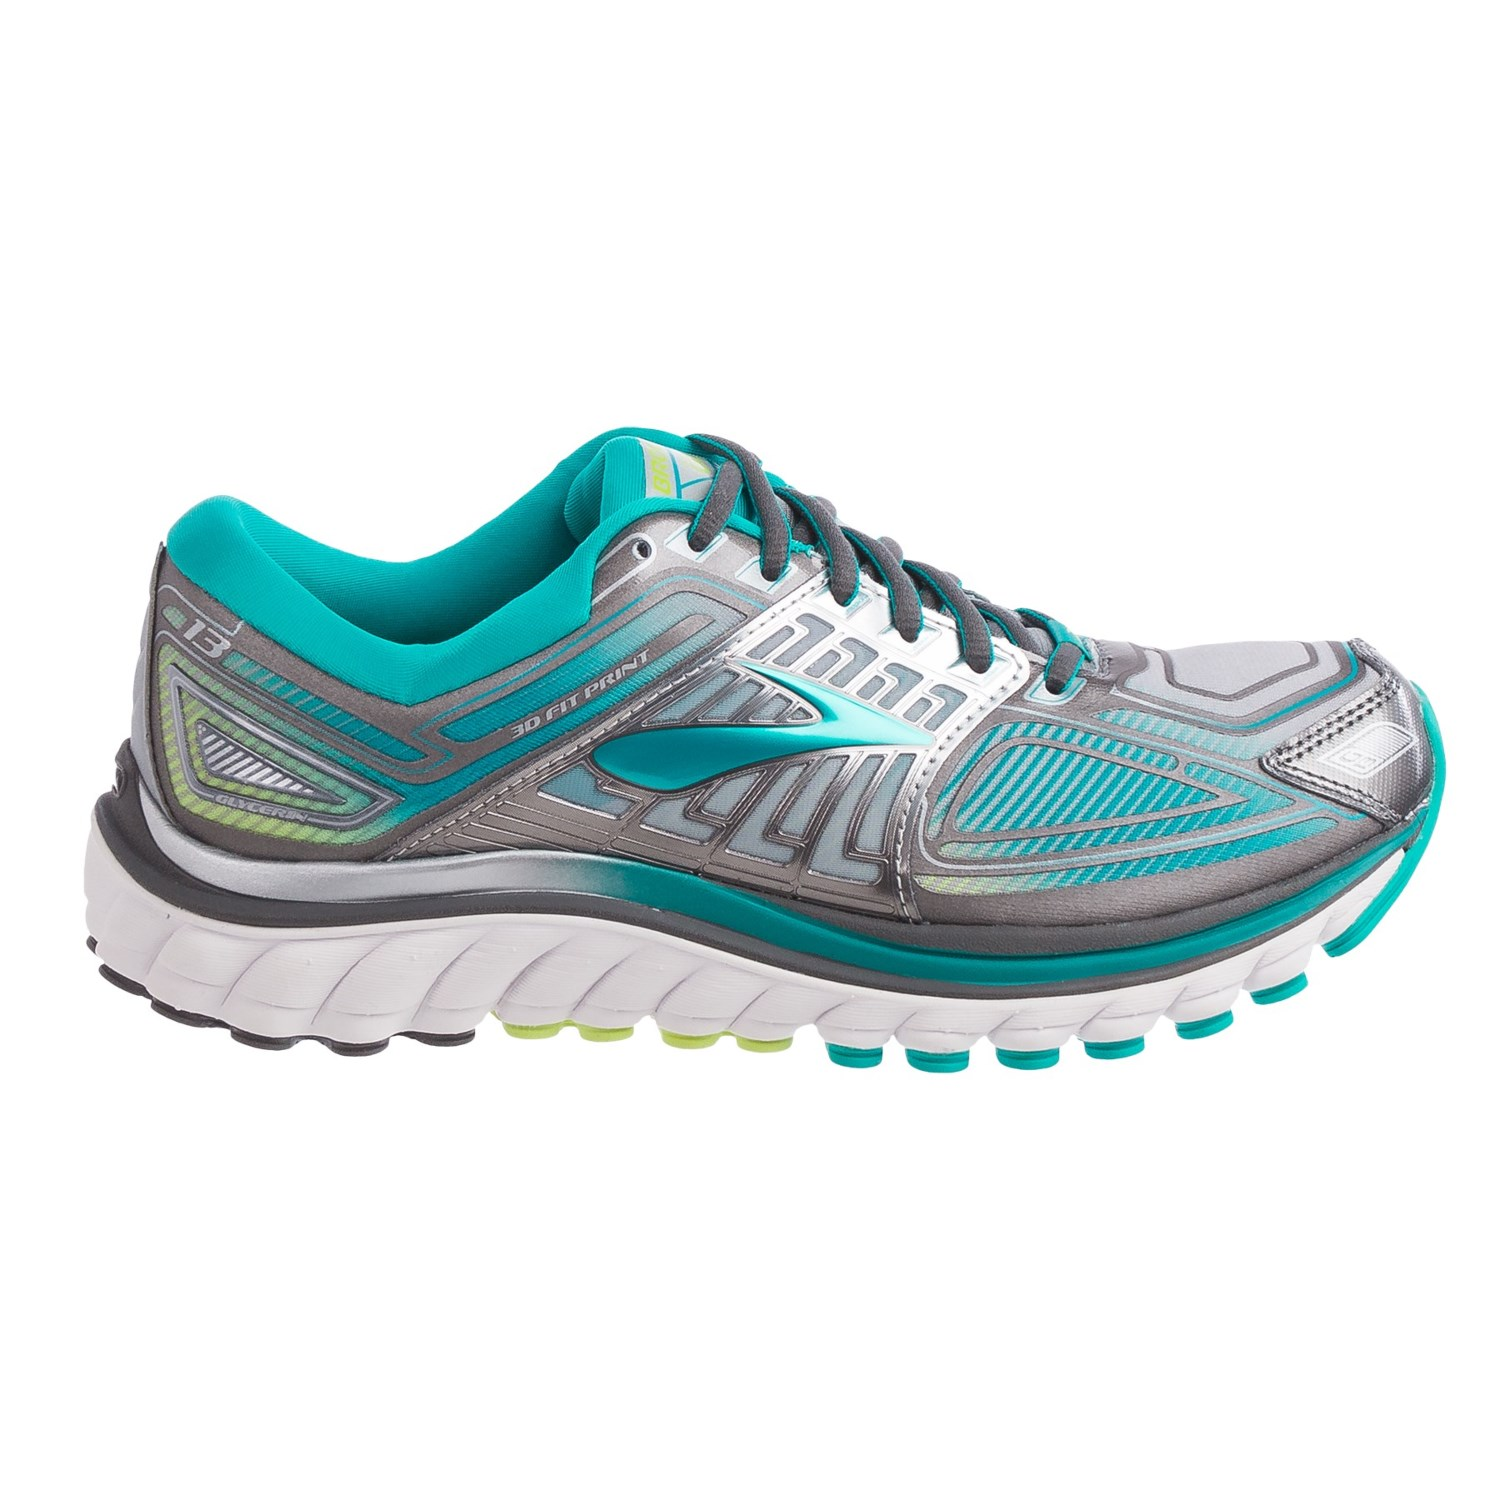 Brooks Glycerin  Running Shoes Review